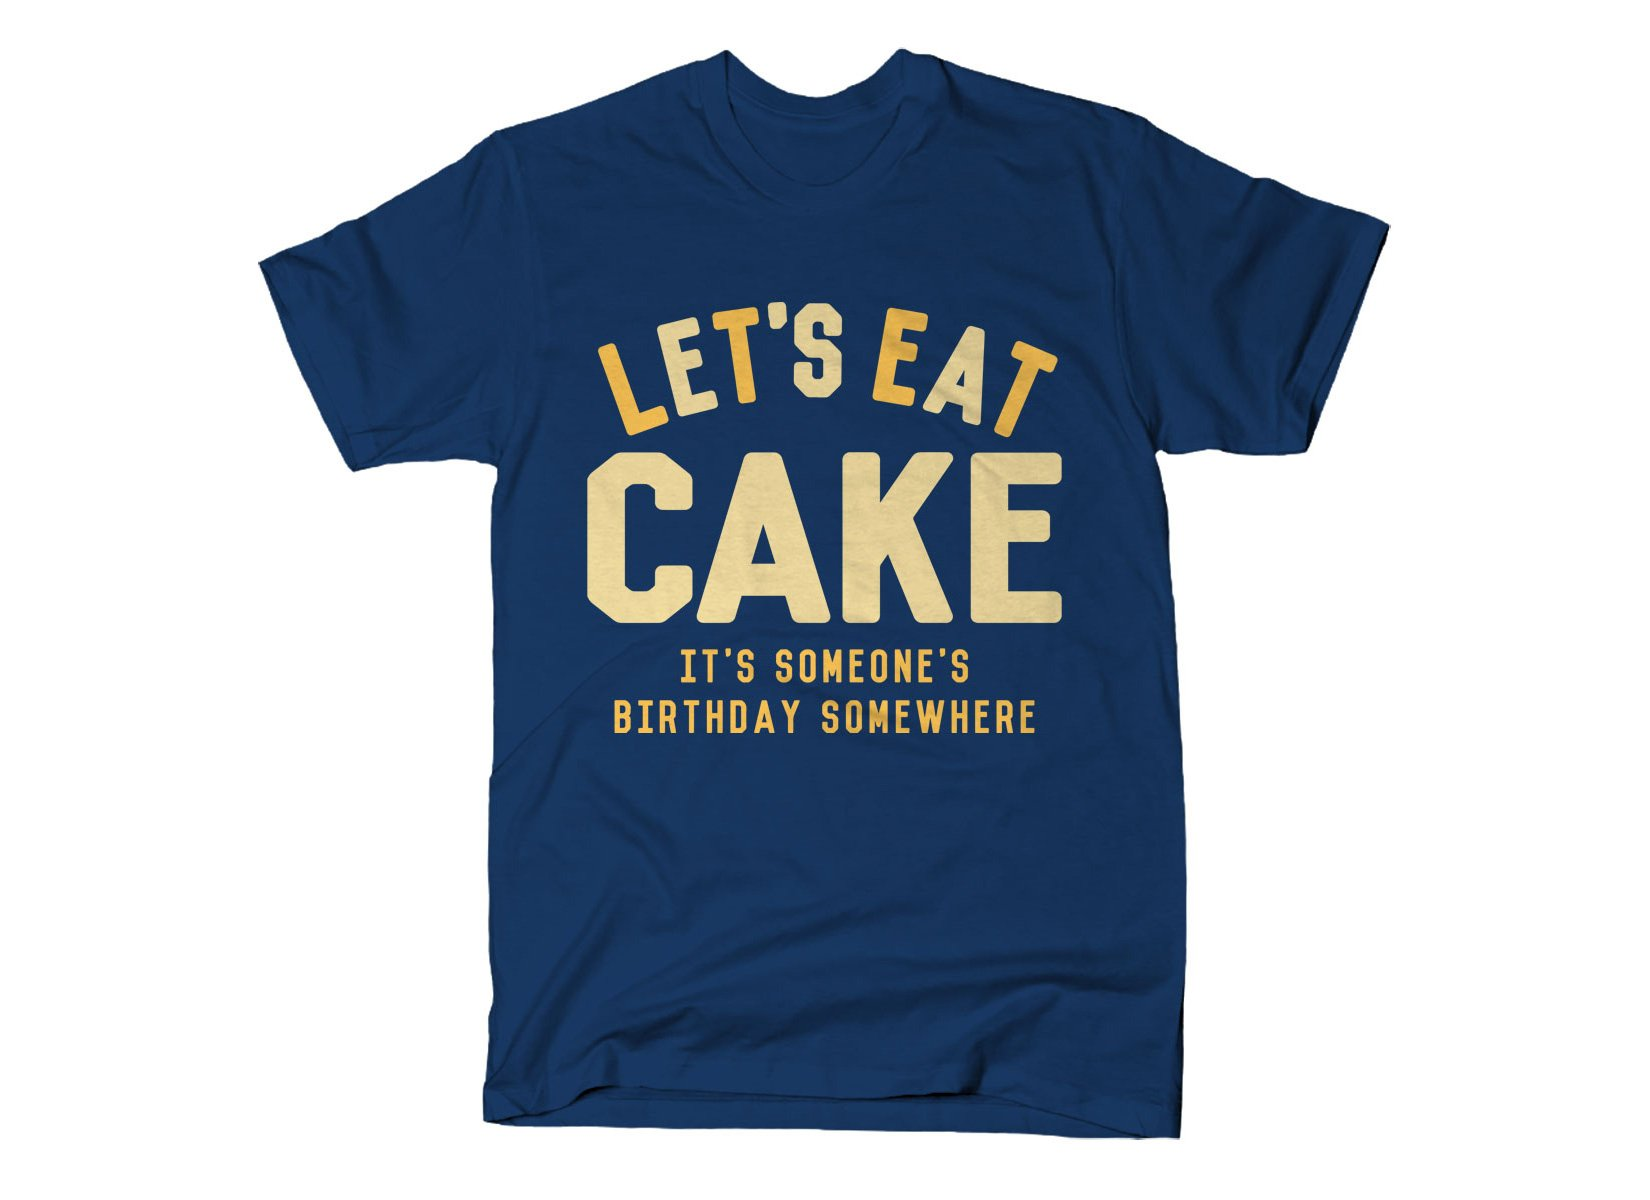 Let's Eat Cake on Mens T-Shirt